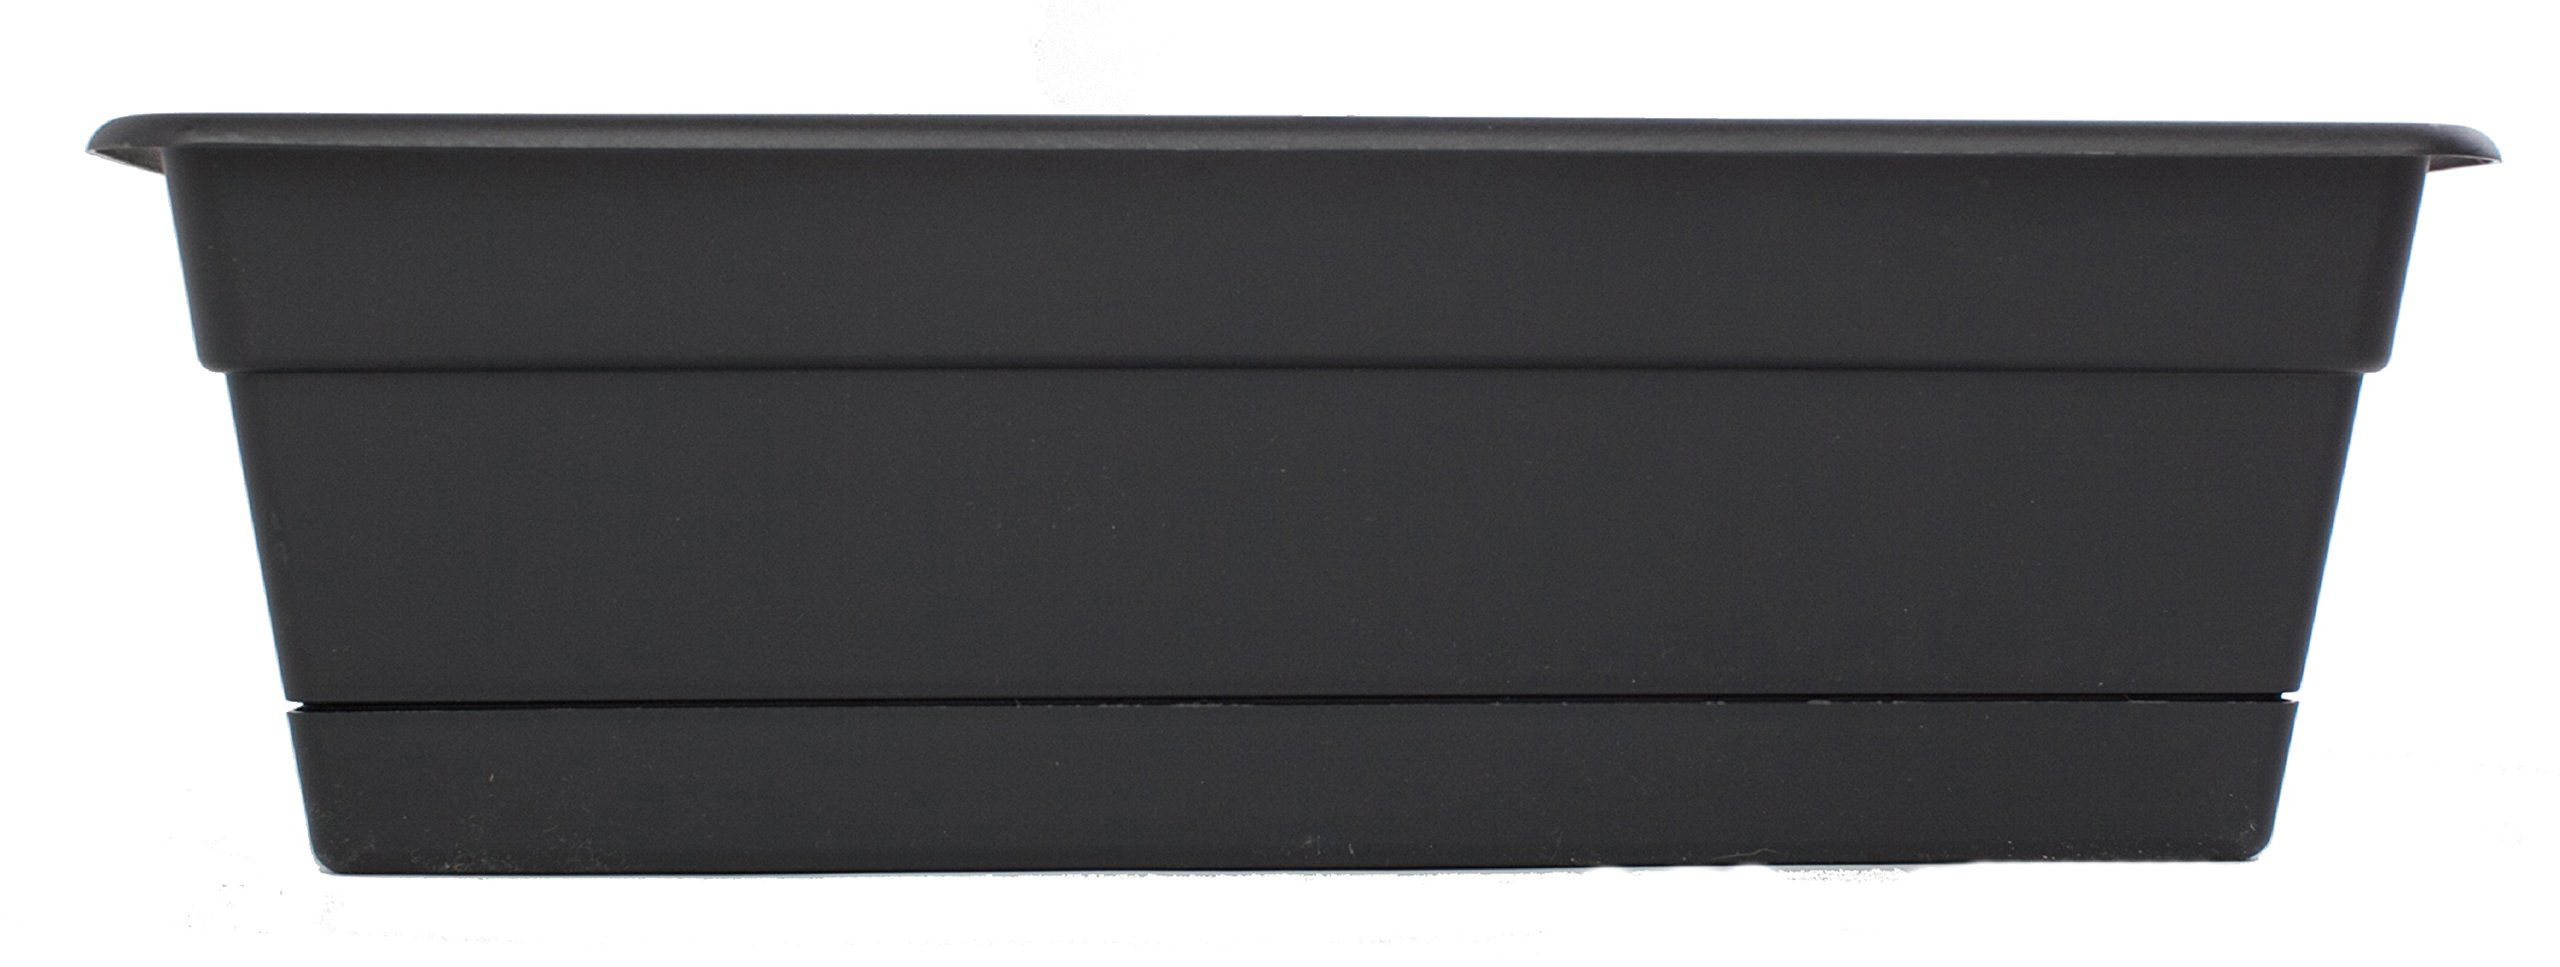 Bloem DCBT30-00 Dura Cotta Plant Window Box, Black, Blue